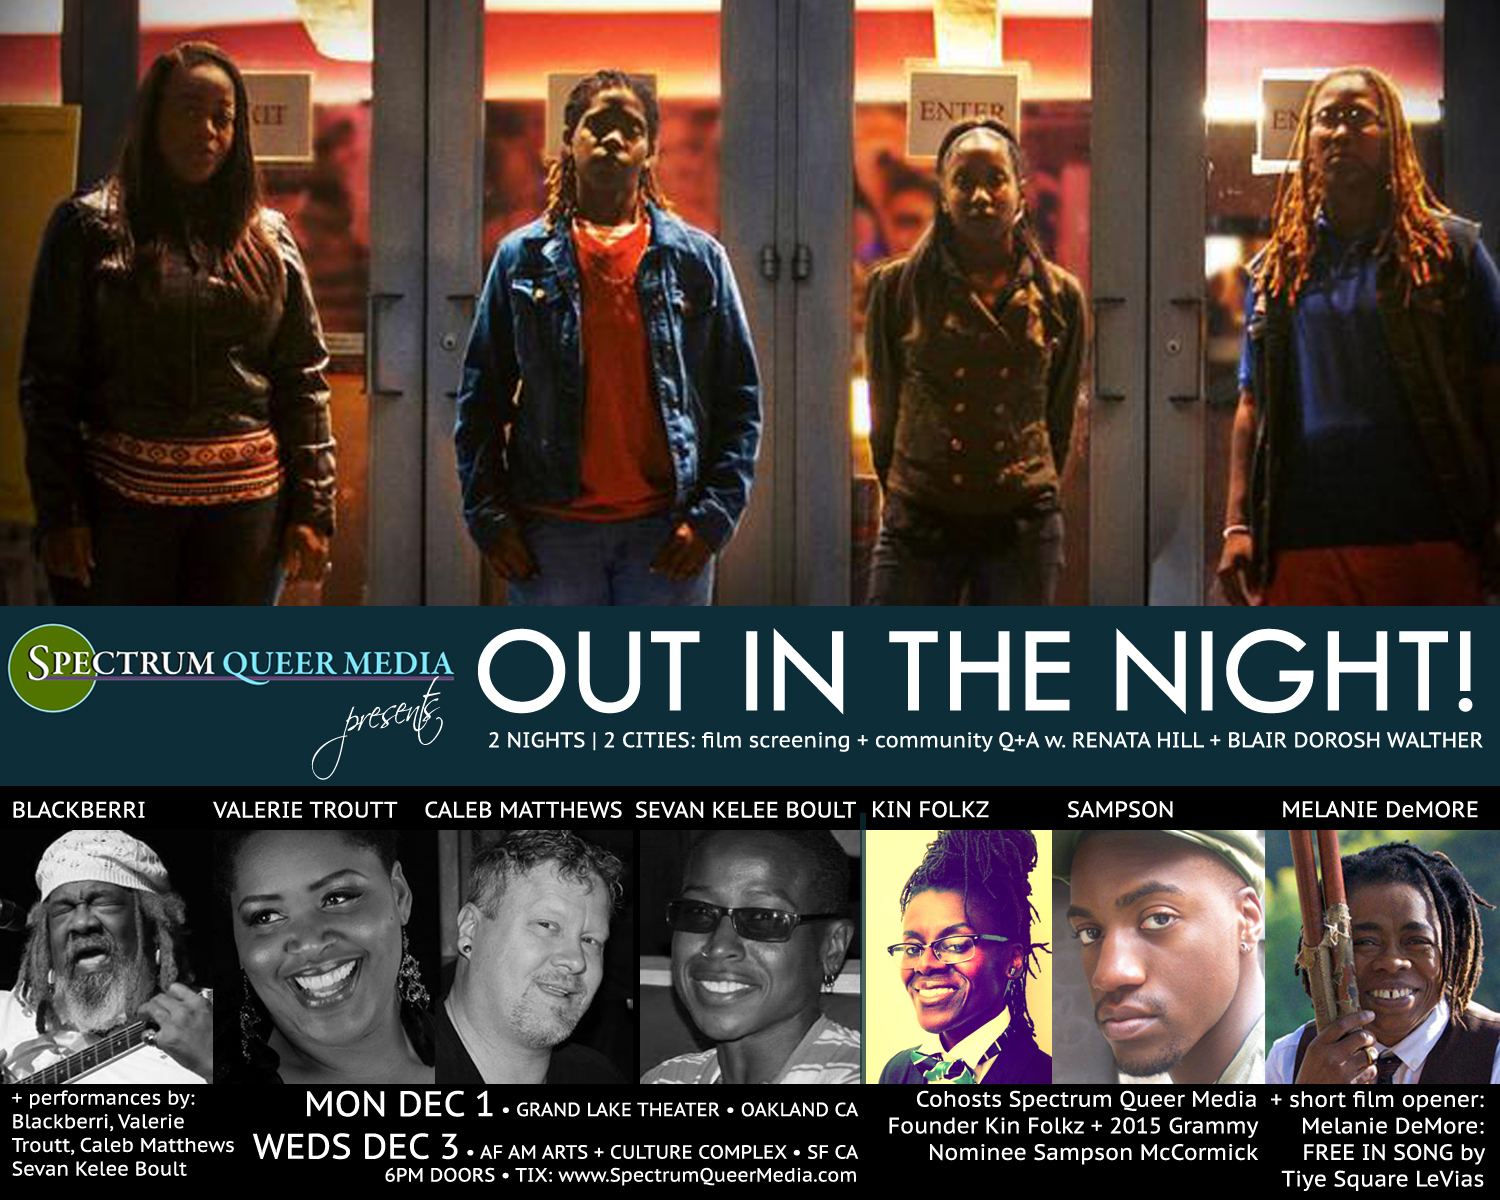 Spectrum Queer Media presents OUT IN THE NIGHT